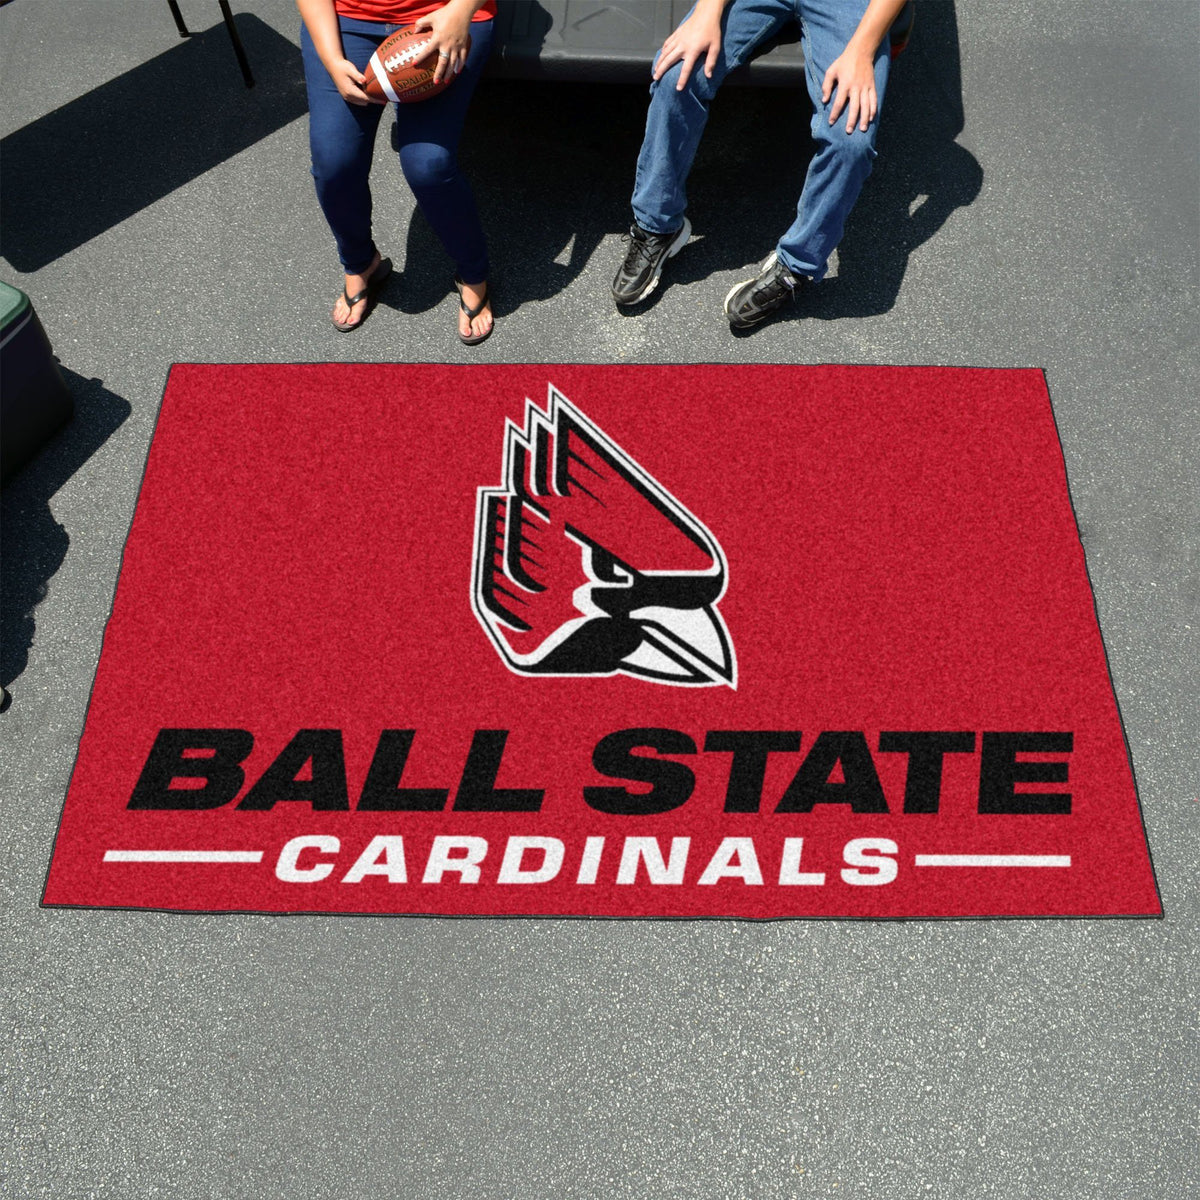 Collegiate - Ulti-Mat: A - L Collegiate Mats, Rectangular Mats, Ulti-Mat, Collegiate, Home Fan Mats Ball State